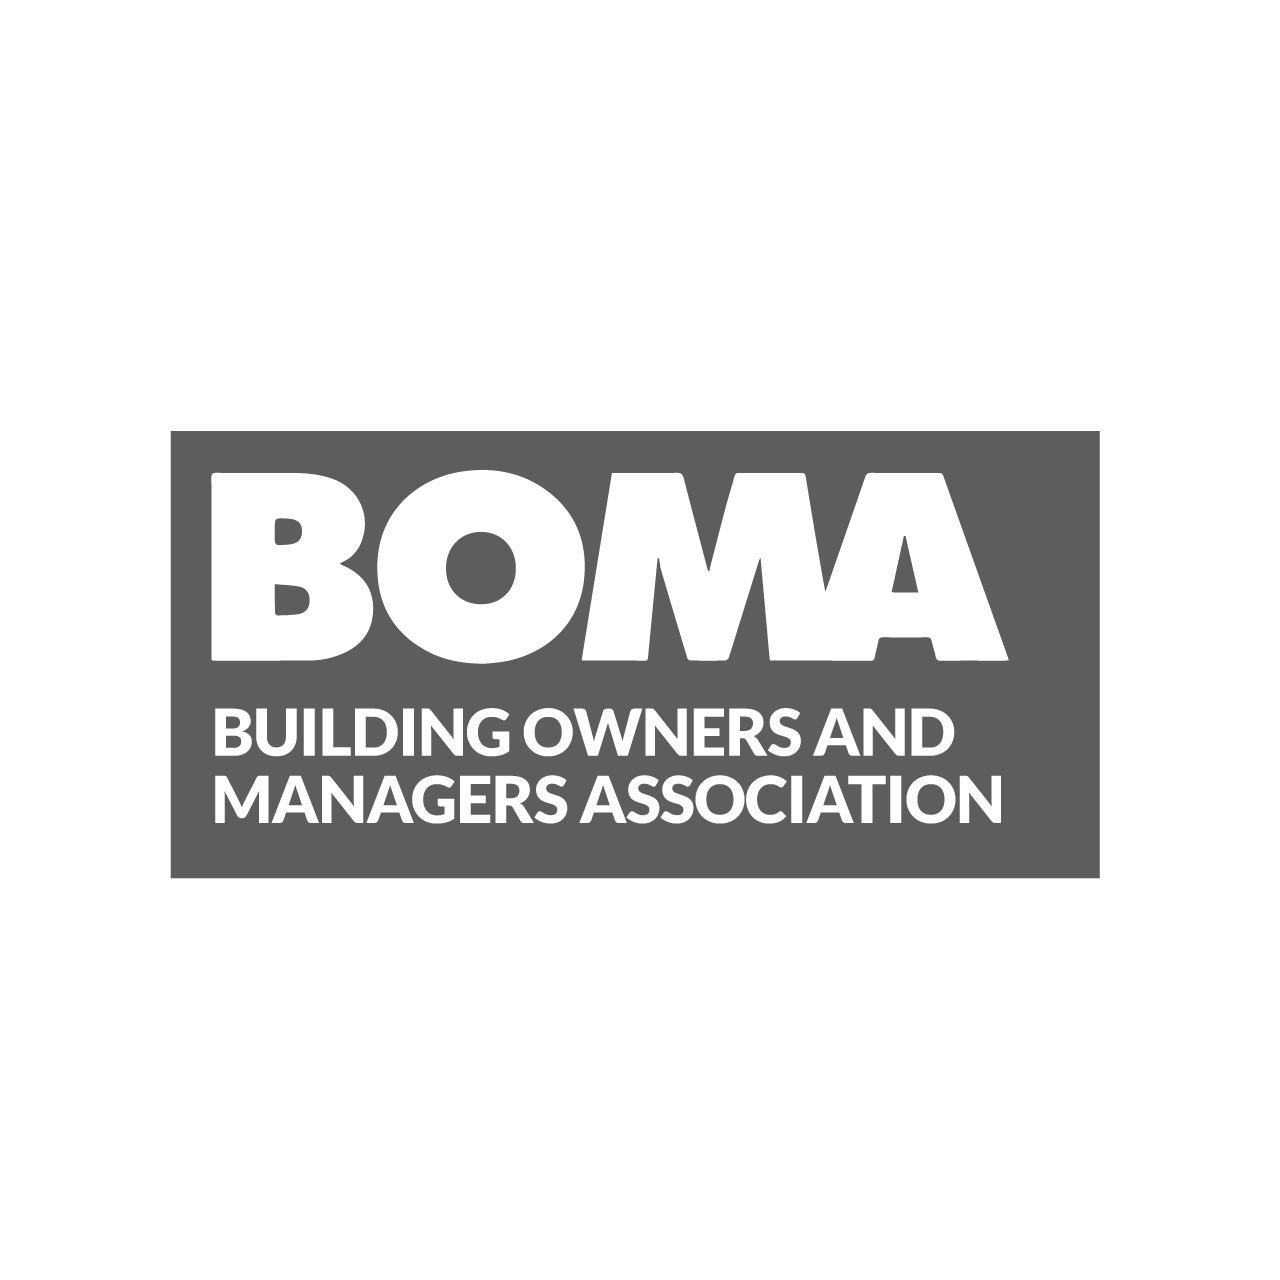 building owners and managers association logo